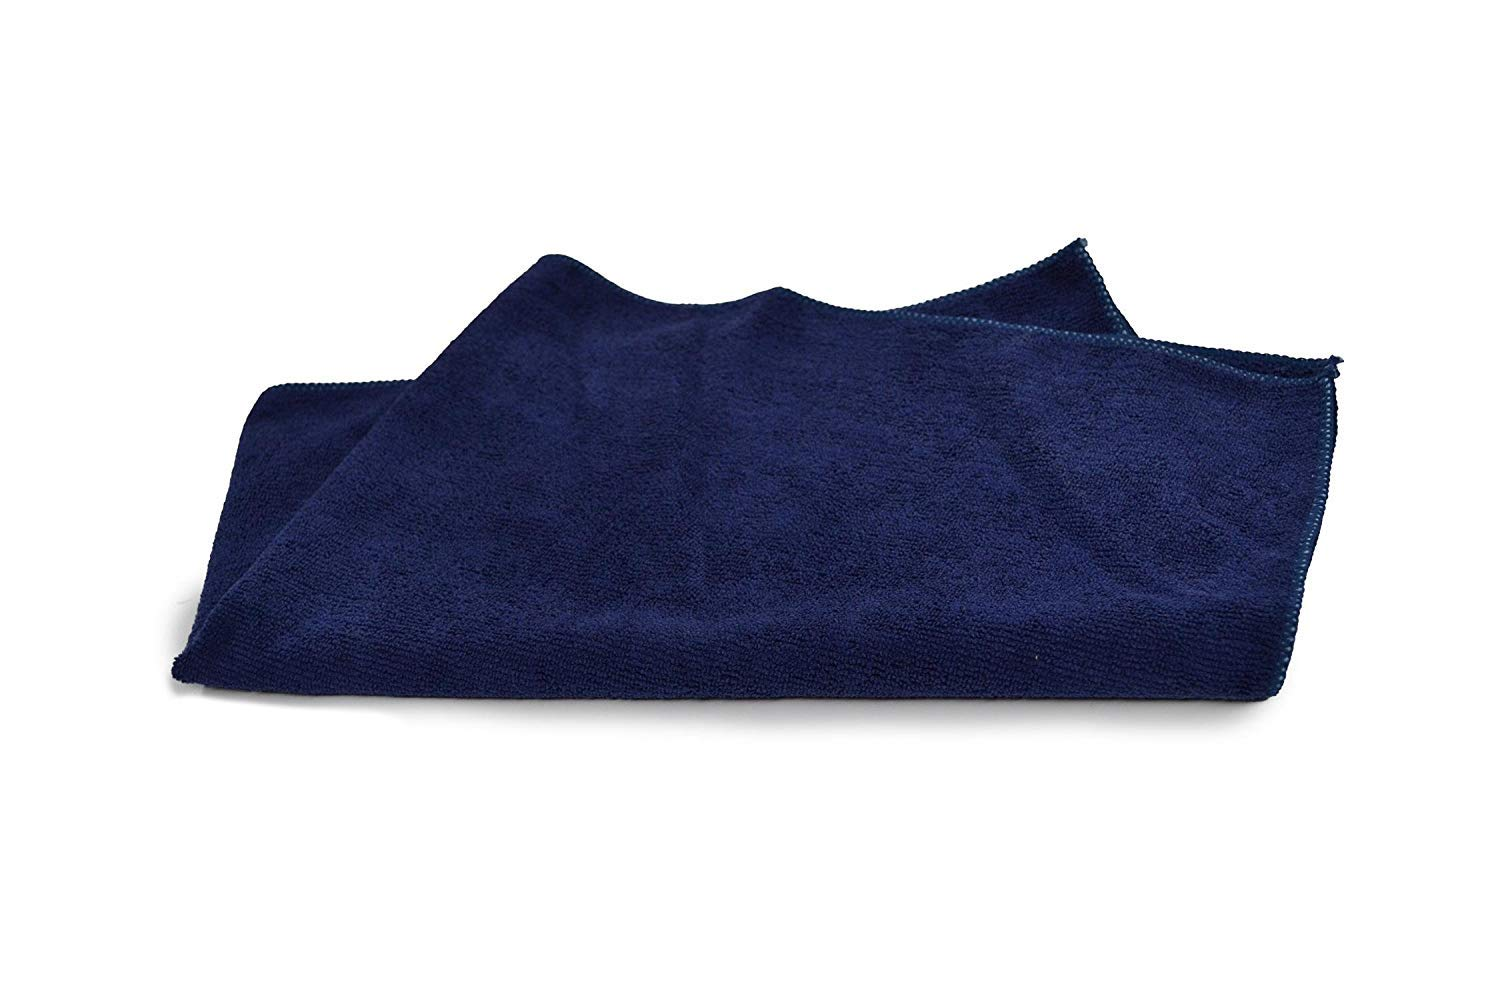 Tuf-Clean A73107 Microfiber Car Wash/Hand Towels, 16'' x 27'', Navy, Pack of 180 by Tuf-Clean (Image #2)